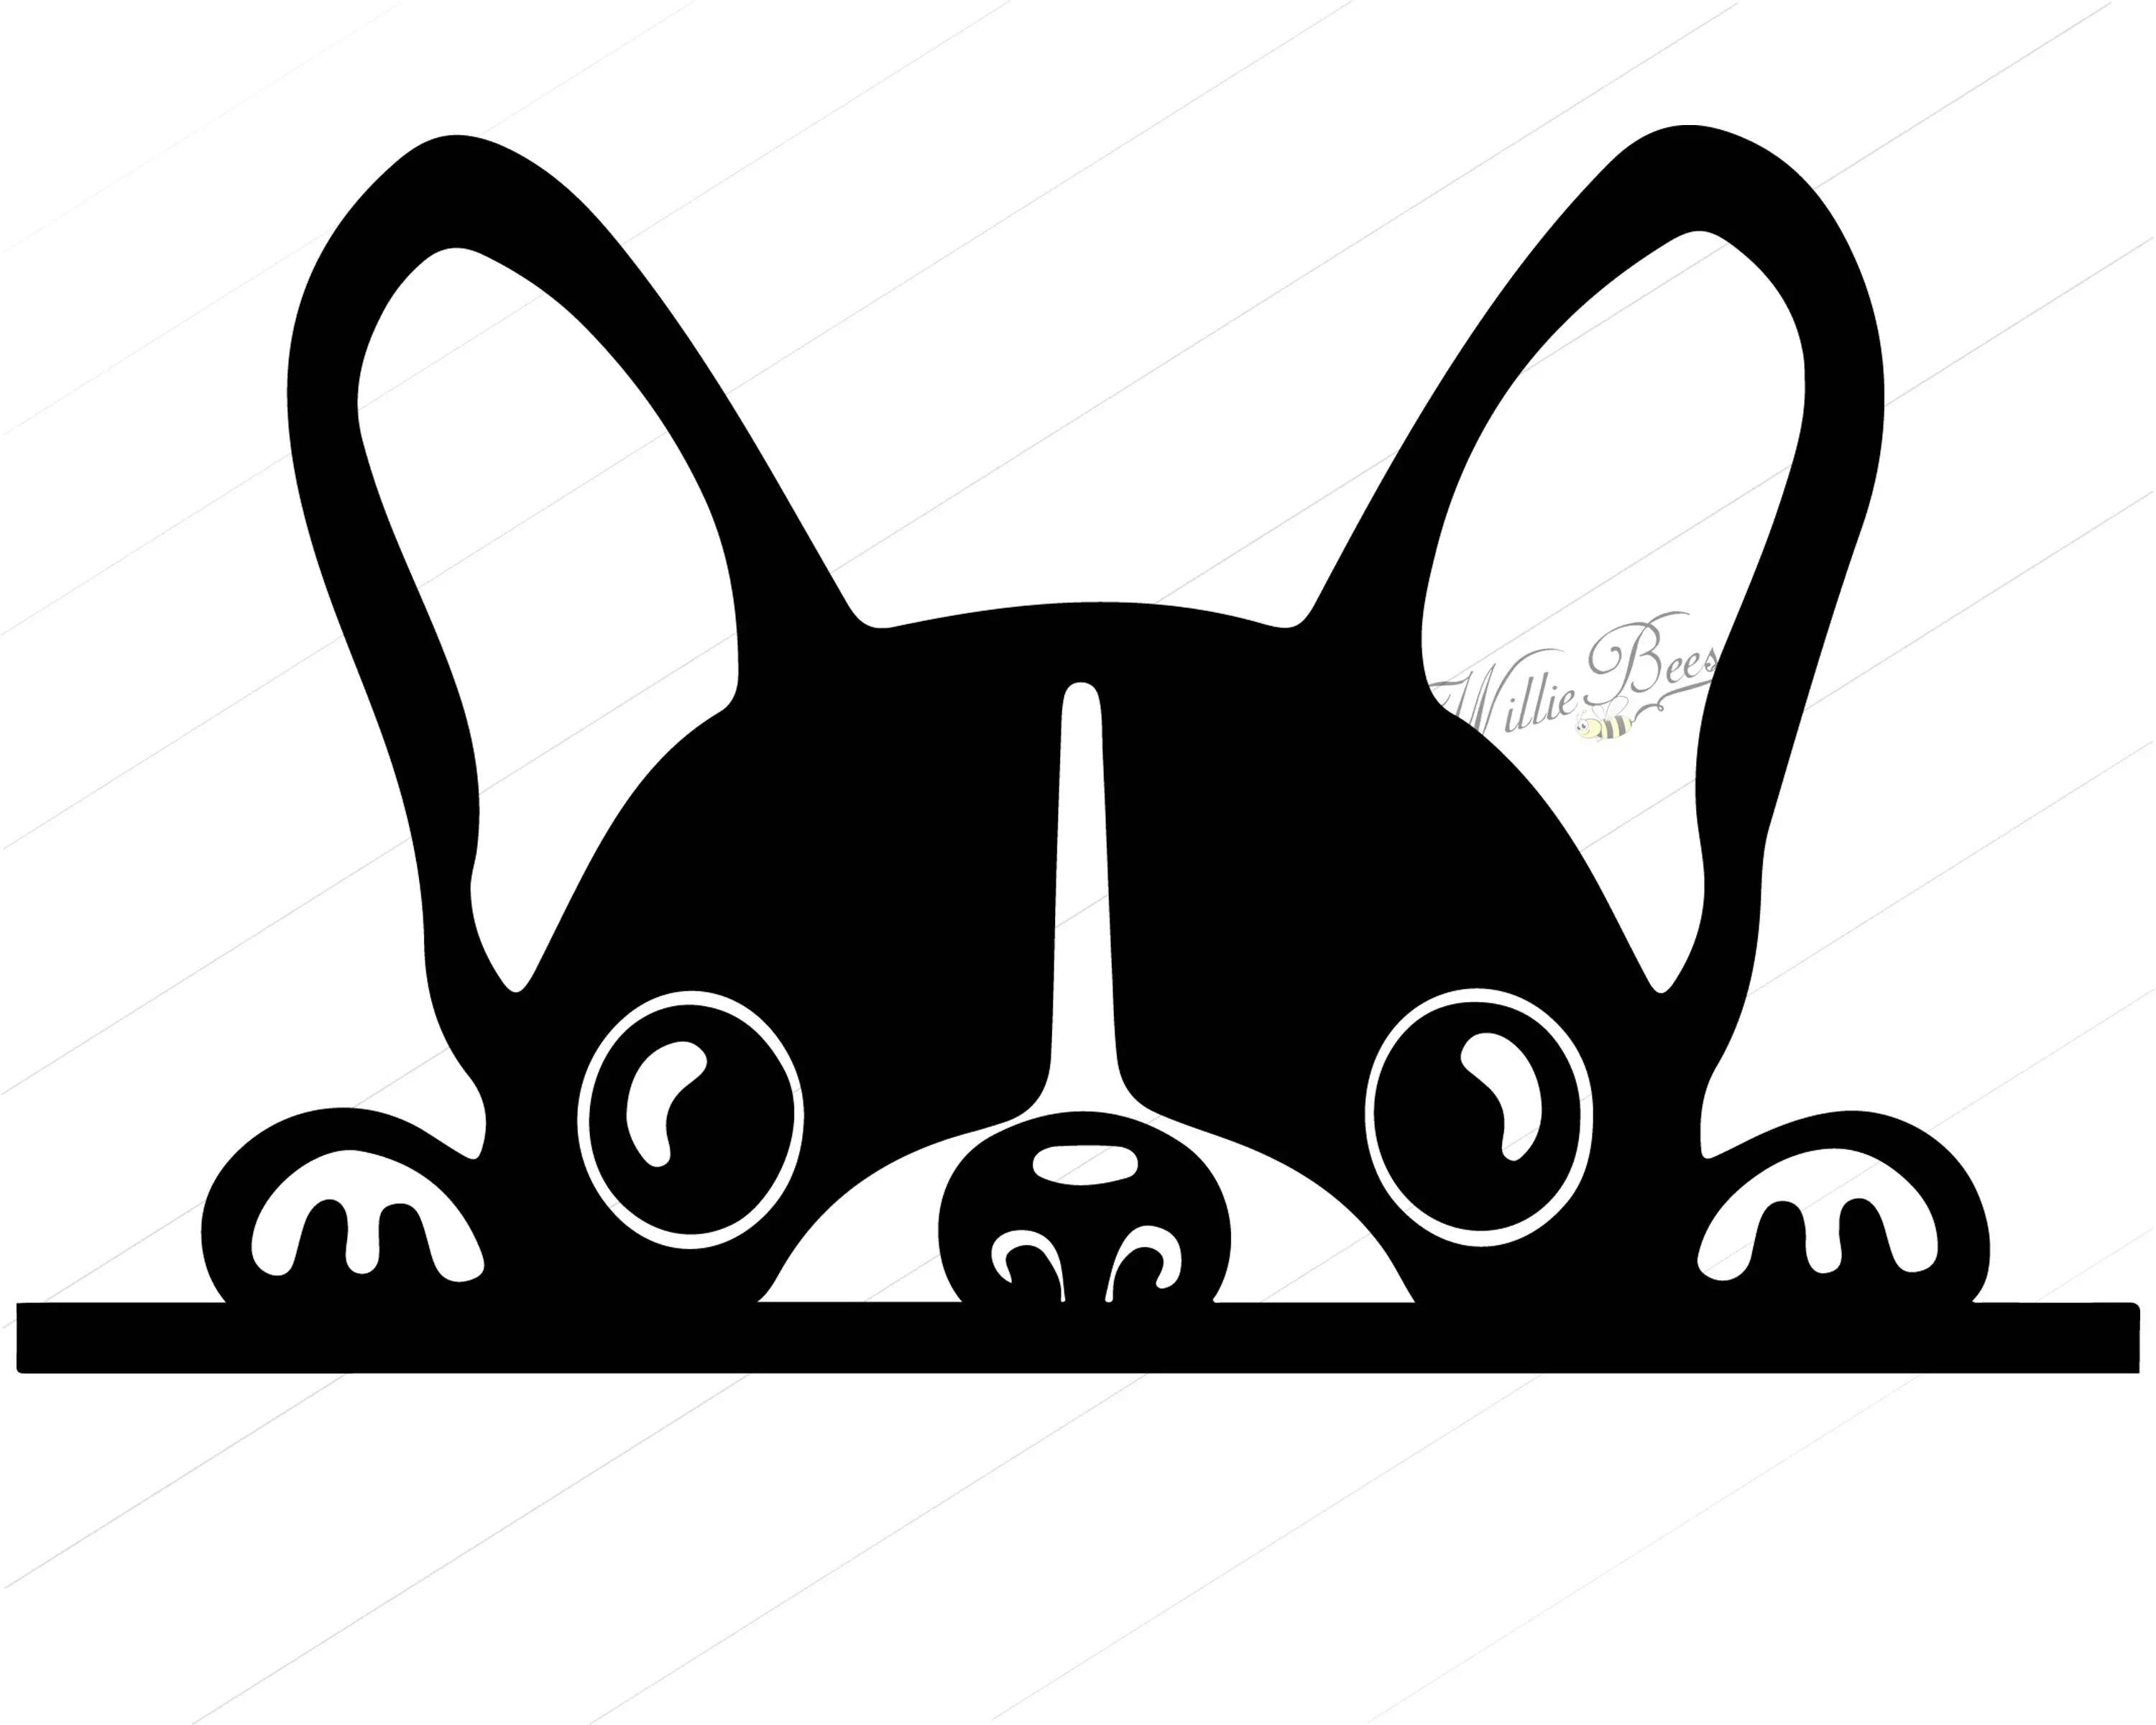 Peeking Dog SVG Silhouette Clipart Canine Clipart Image